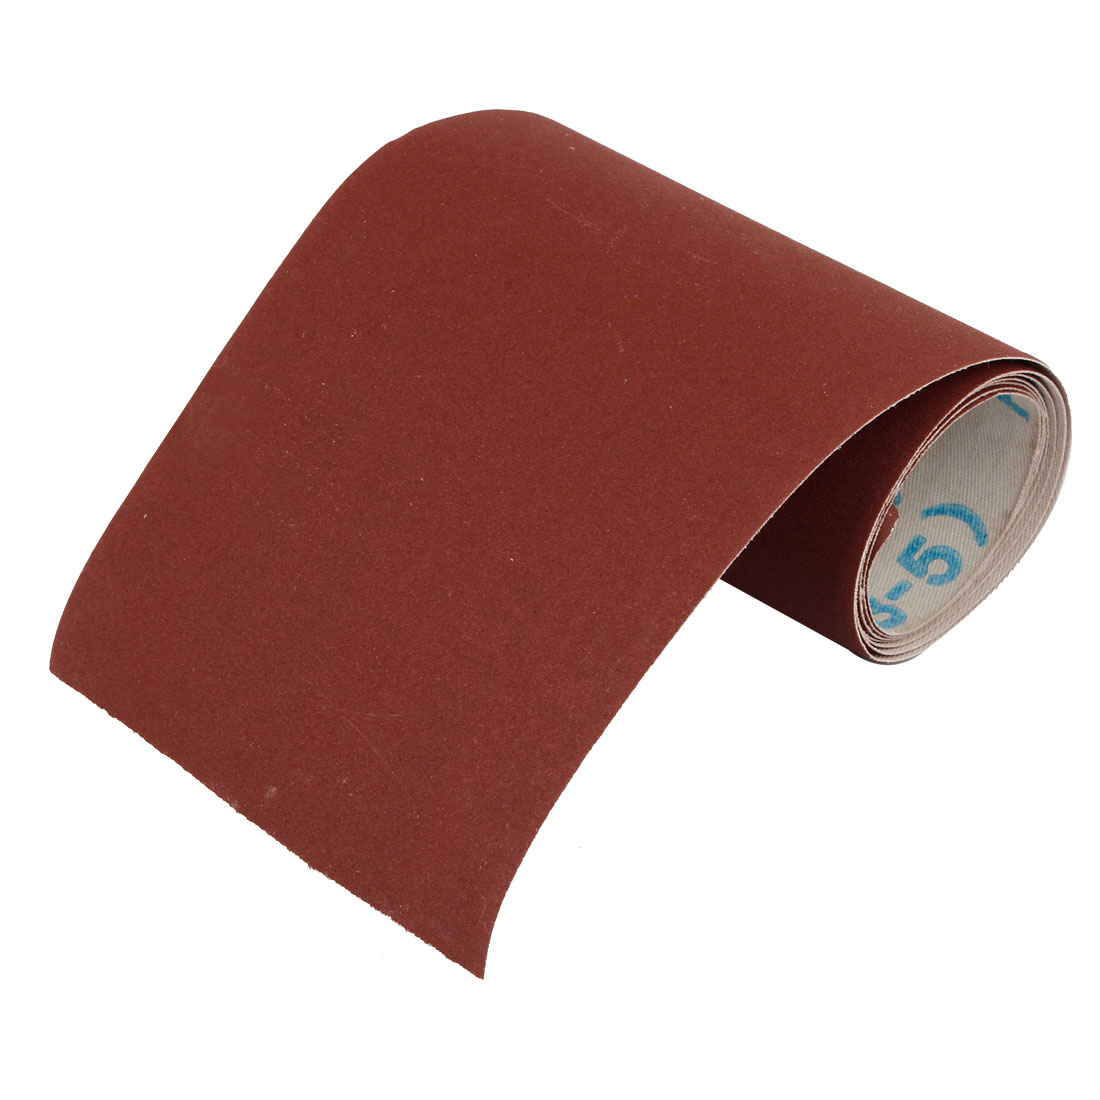 1M Length Dark Brown Nylon Abrasive 320 Grit Sanding Belt Sandpaper Sand Sheet